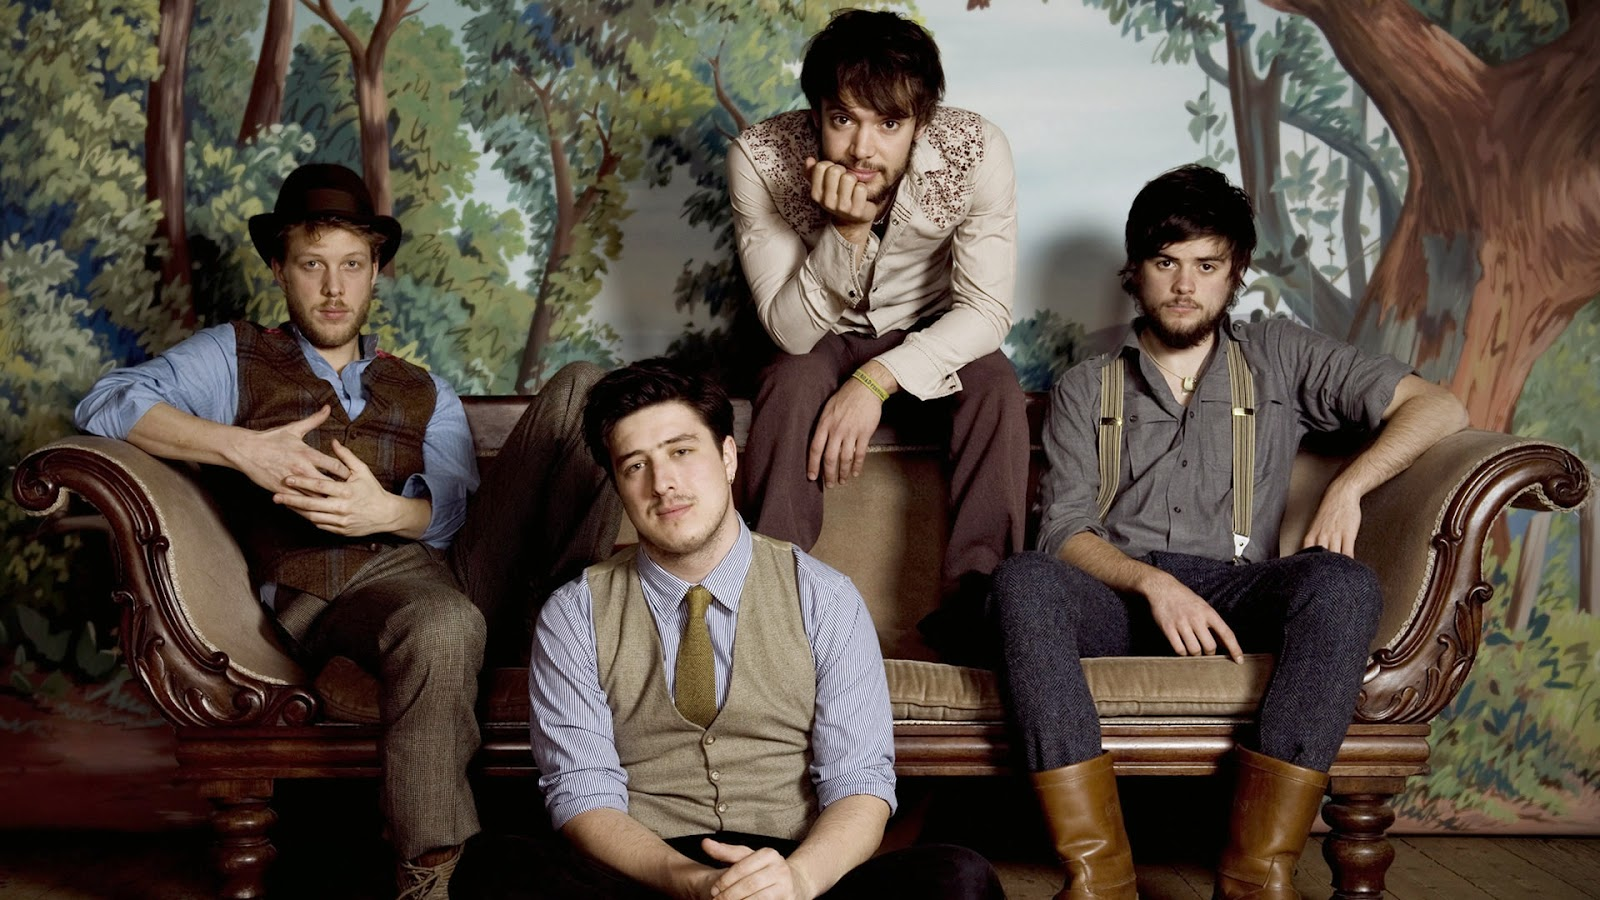 mumford and sons song titles